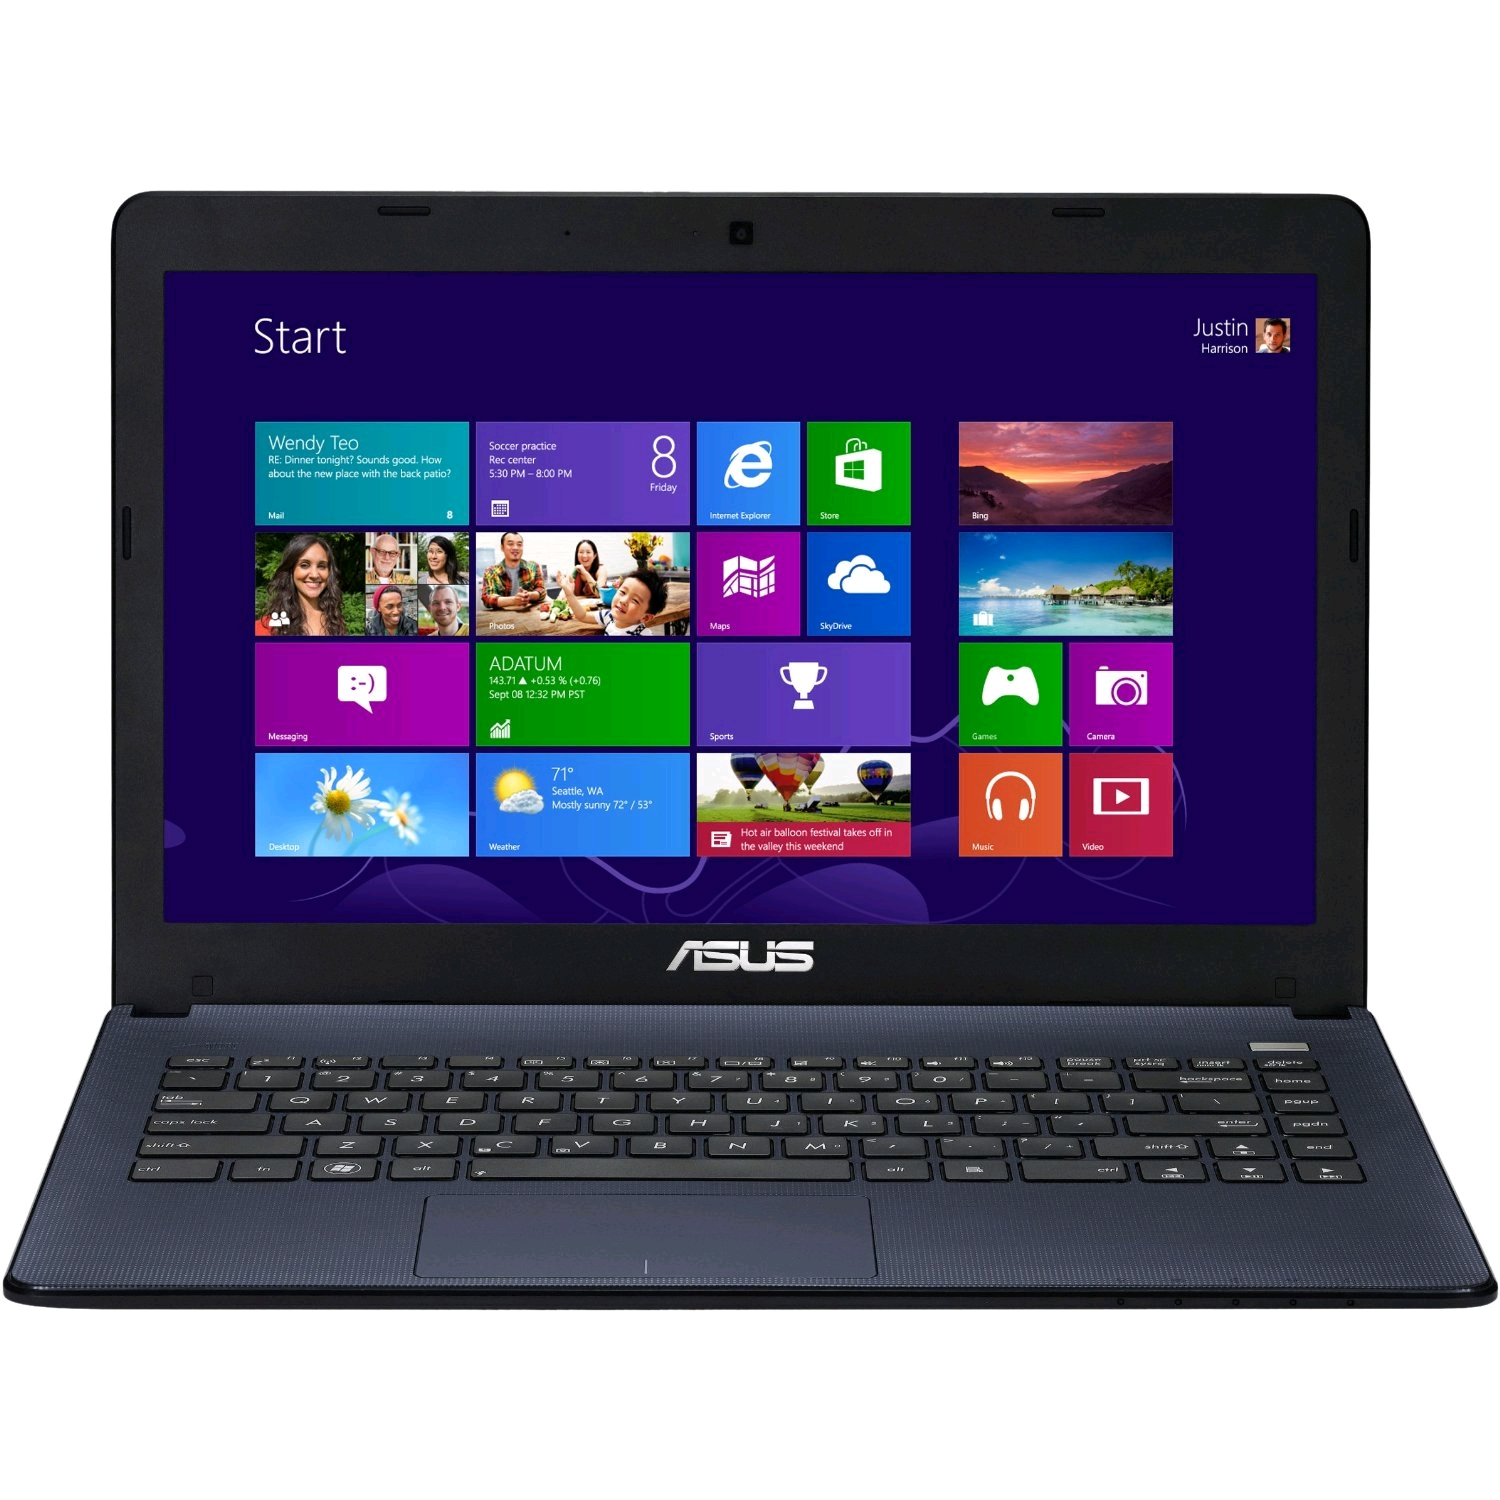 ASUS X451CA Qualcomm Atheros WLAN Driver Download